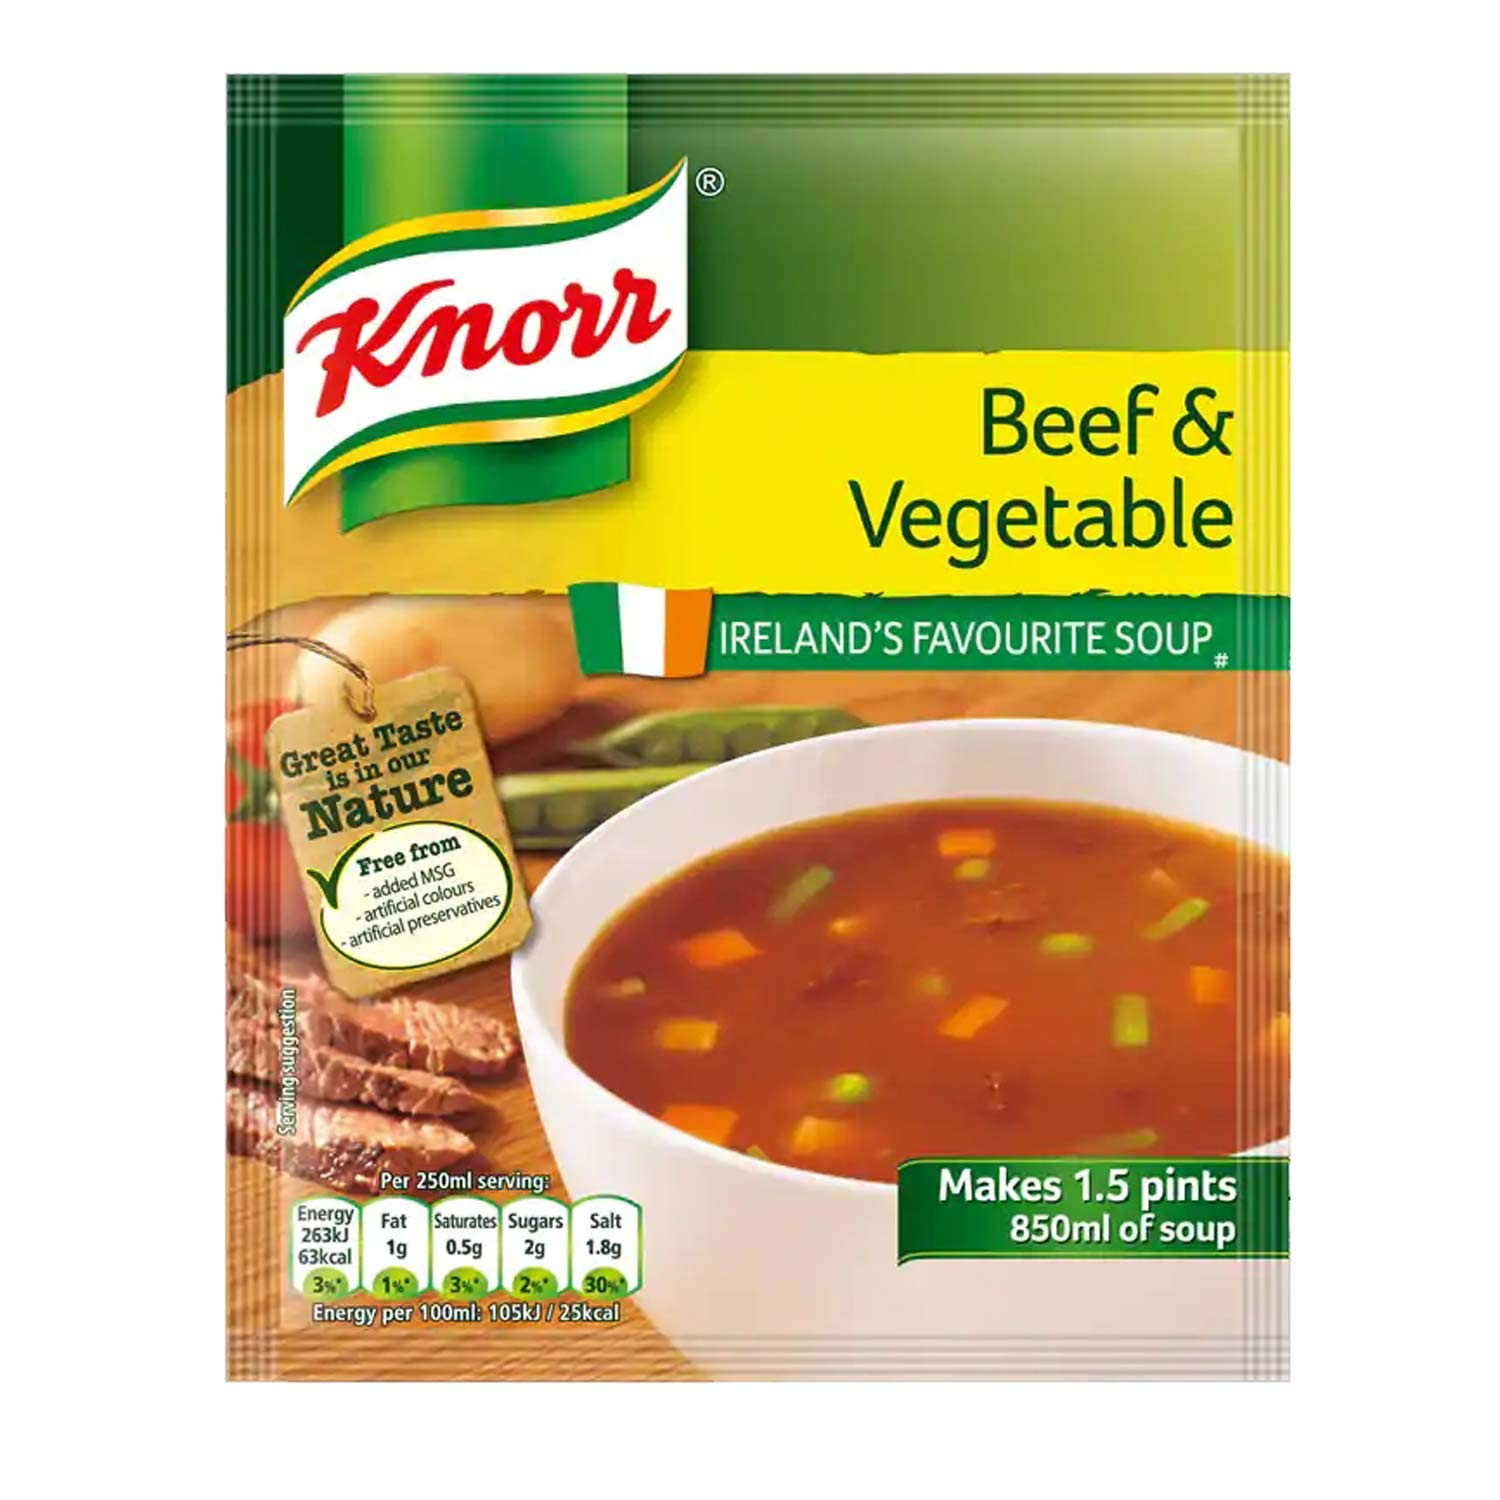 Knorr Beef Vegetable Soup Outstanding Makes 1.5Pints of Pack 2 60g Rapid rise 14x 14